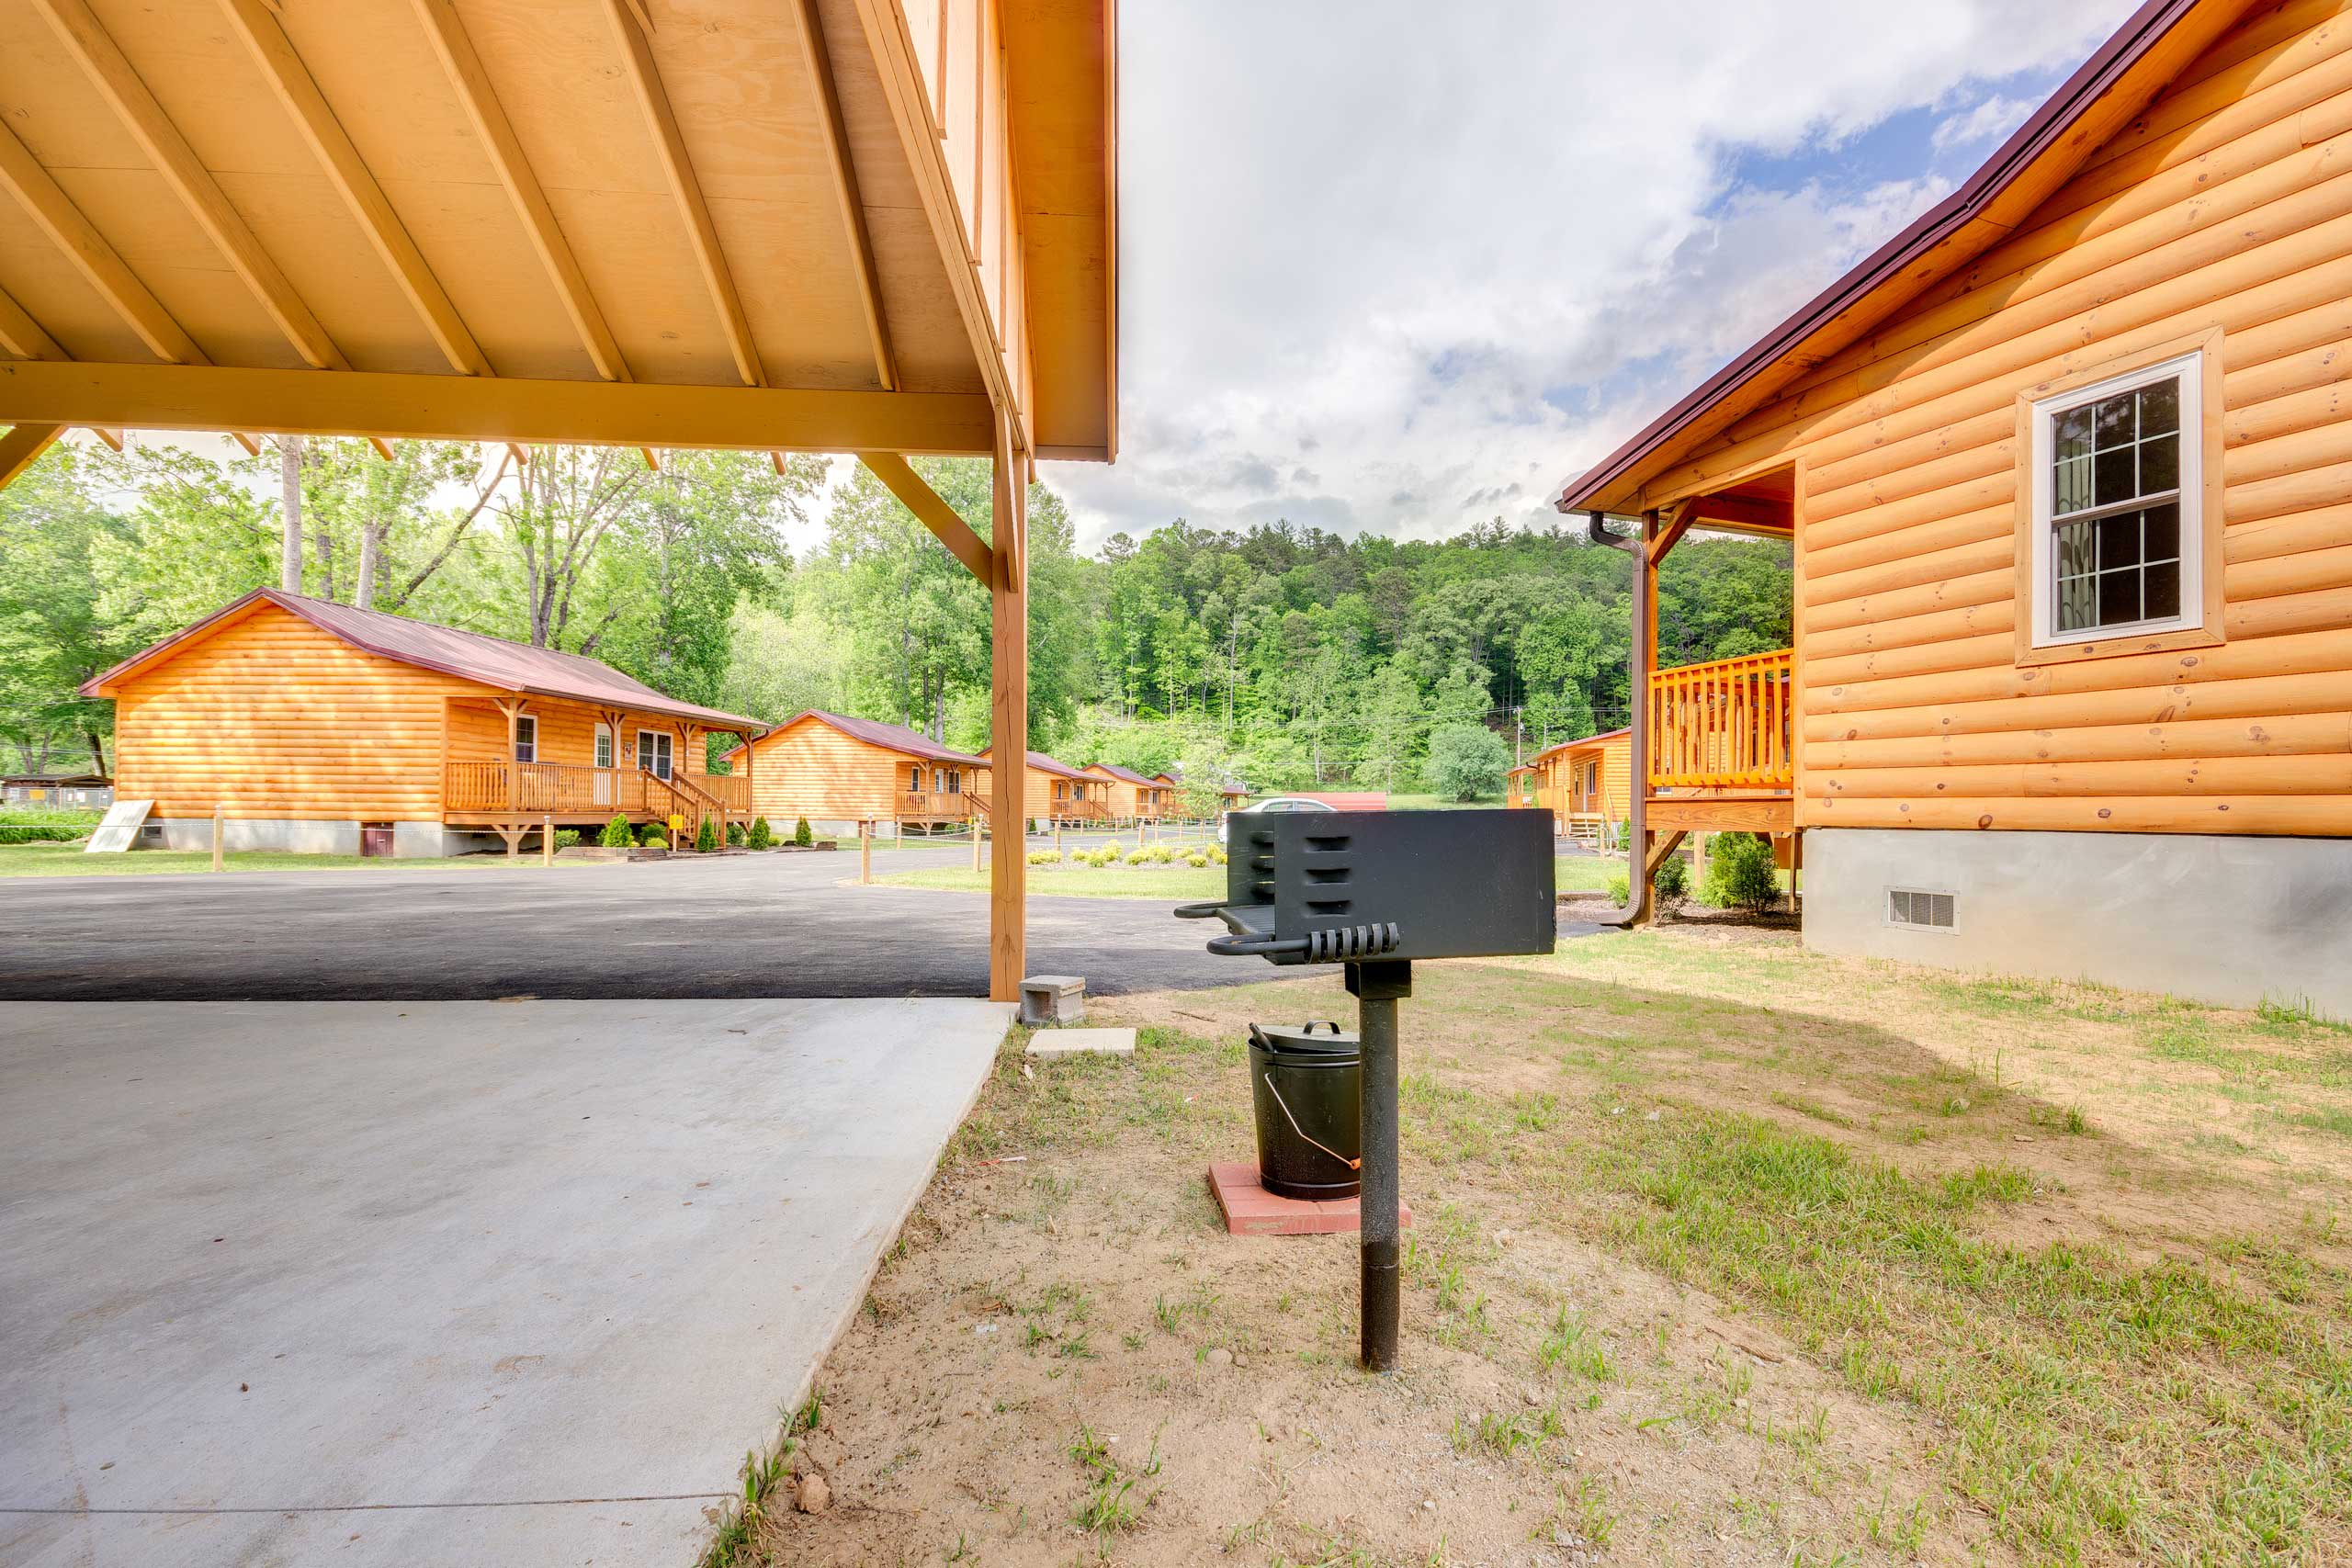 Host a cookout at the community picnic area.